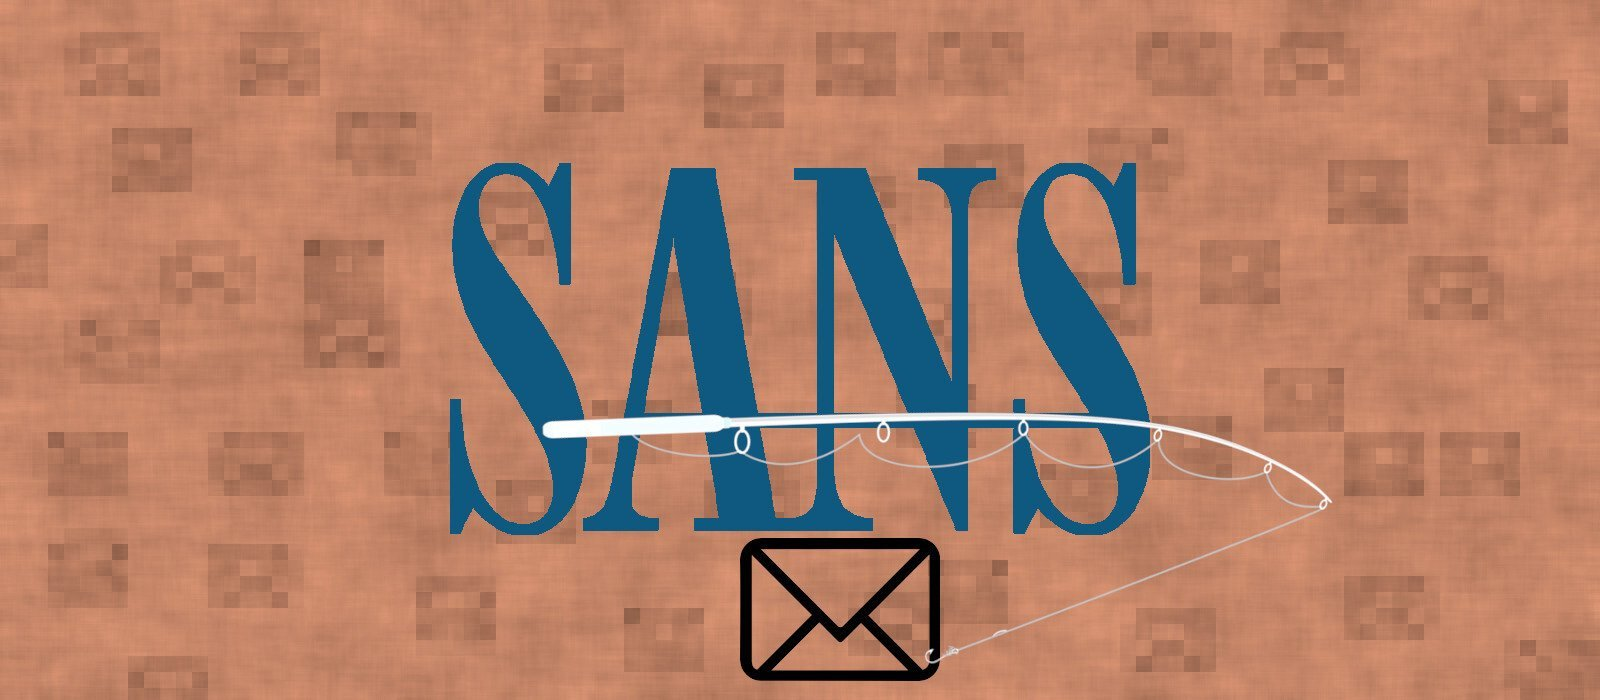 SANS Infosec Training Org Suffers Data Breach After Phishing Attack